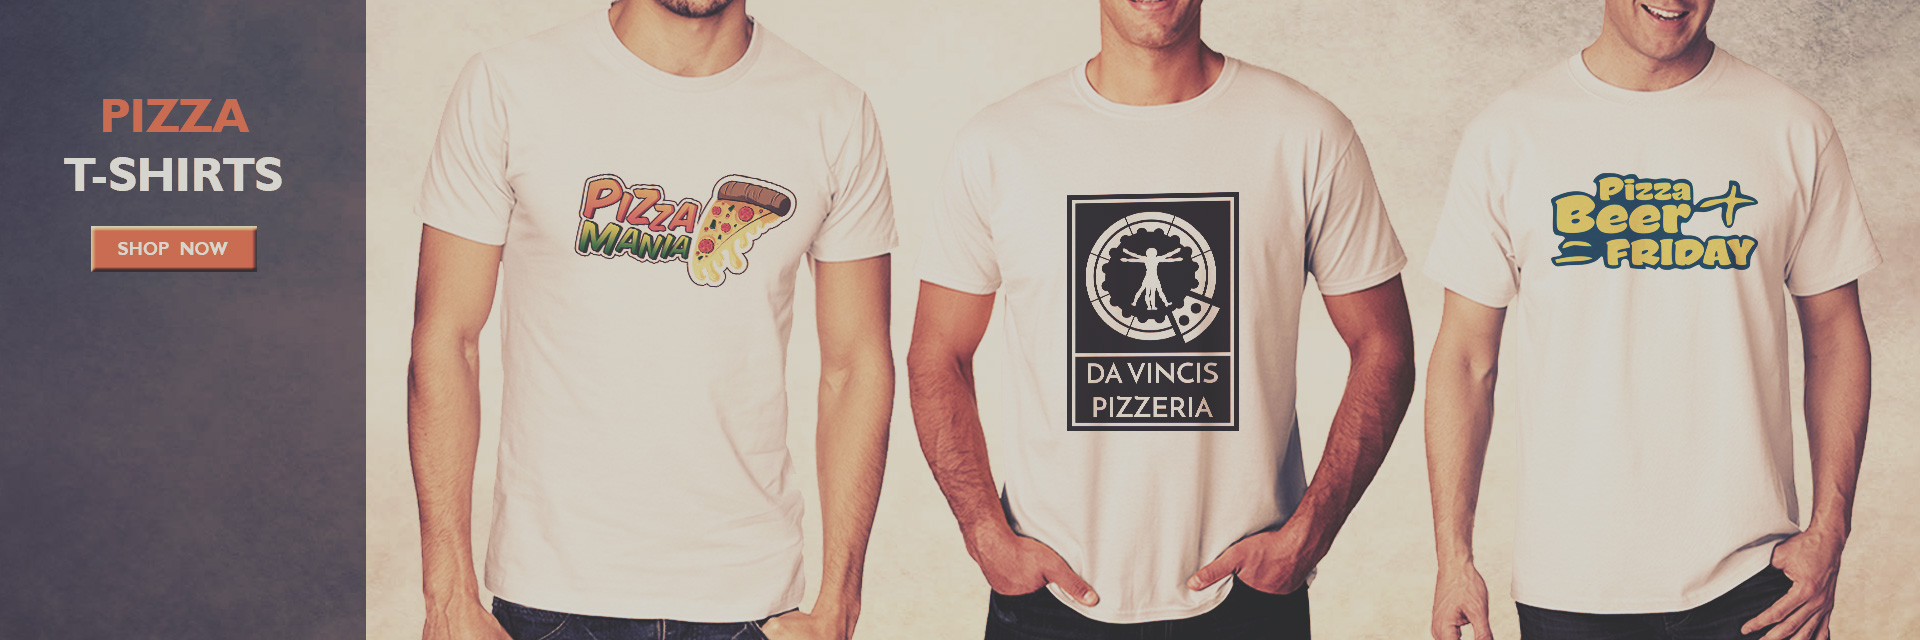 Buy Pizza T-Shirts